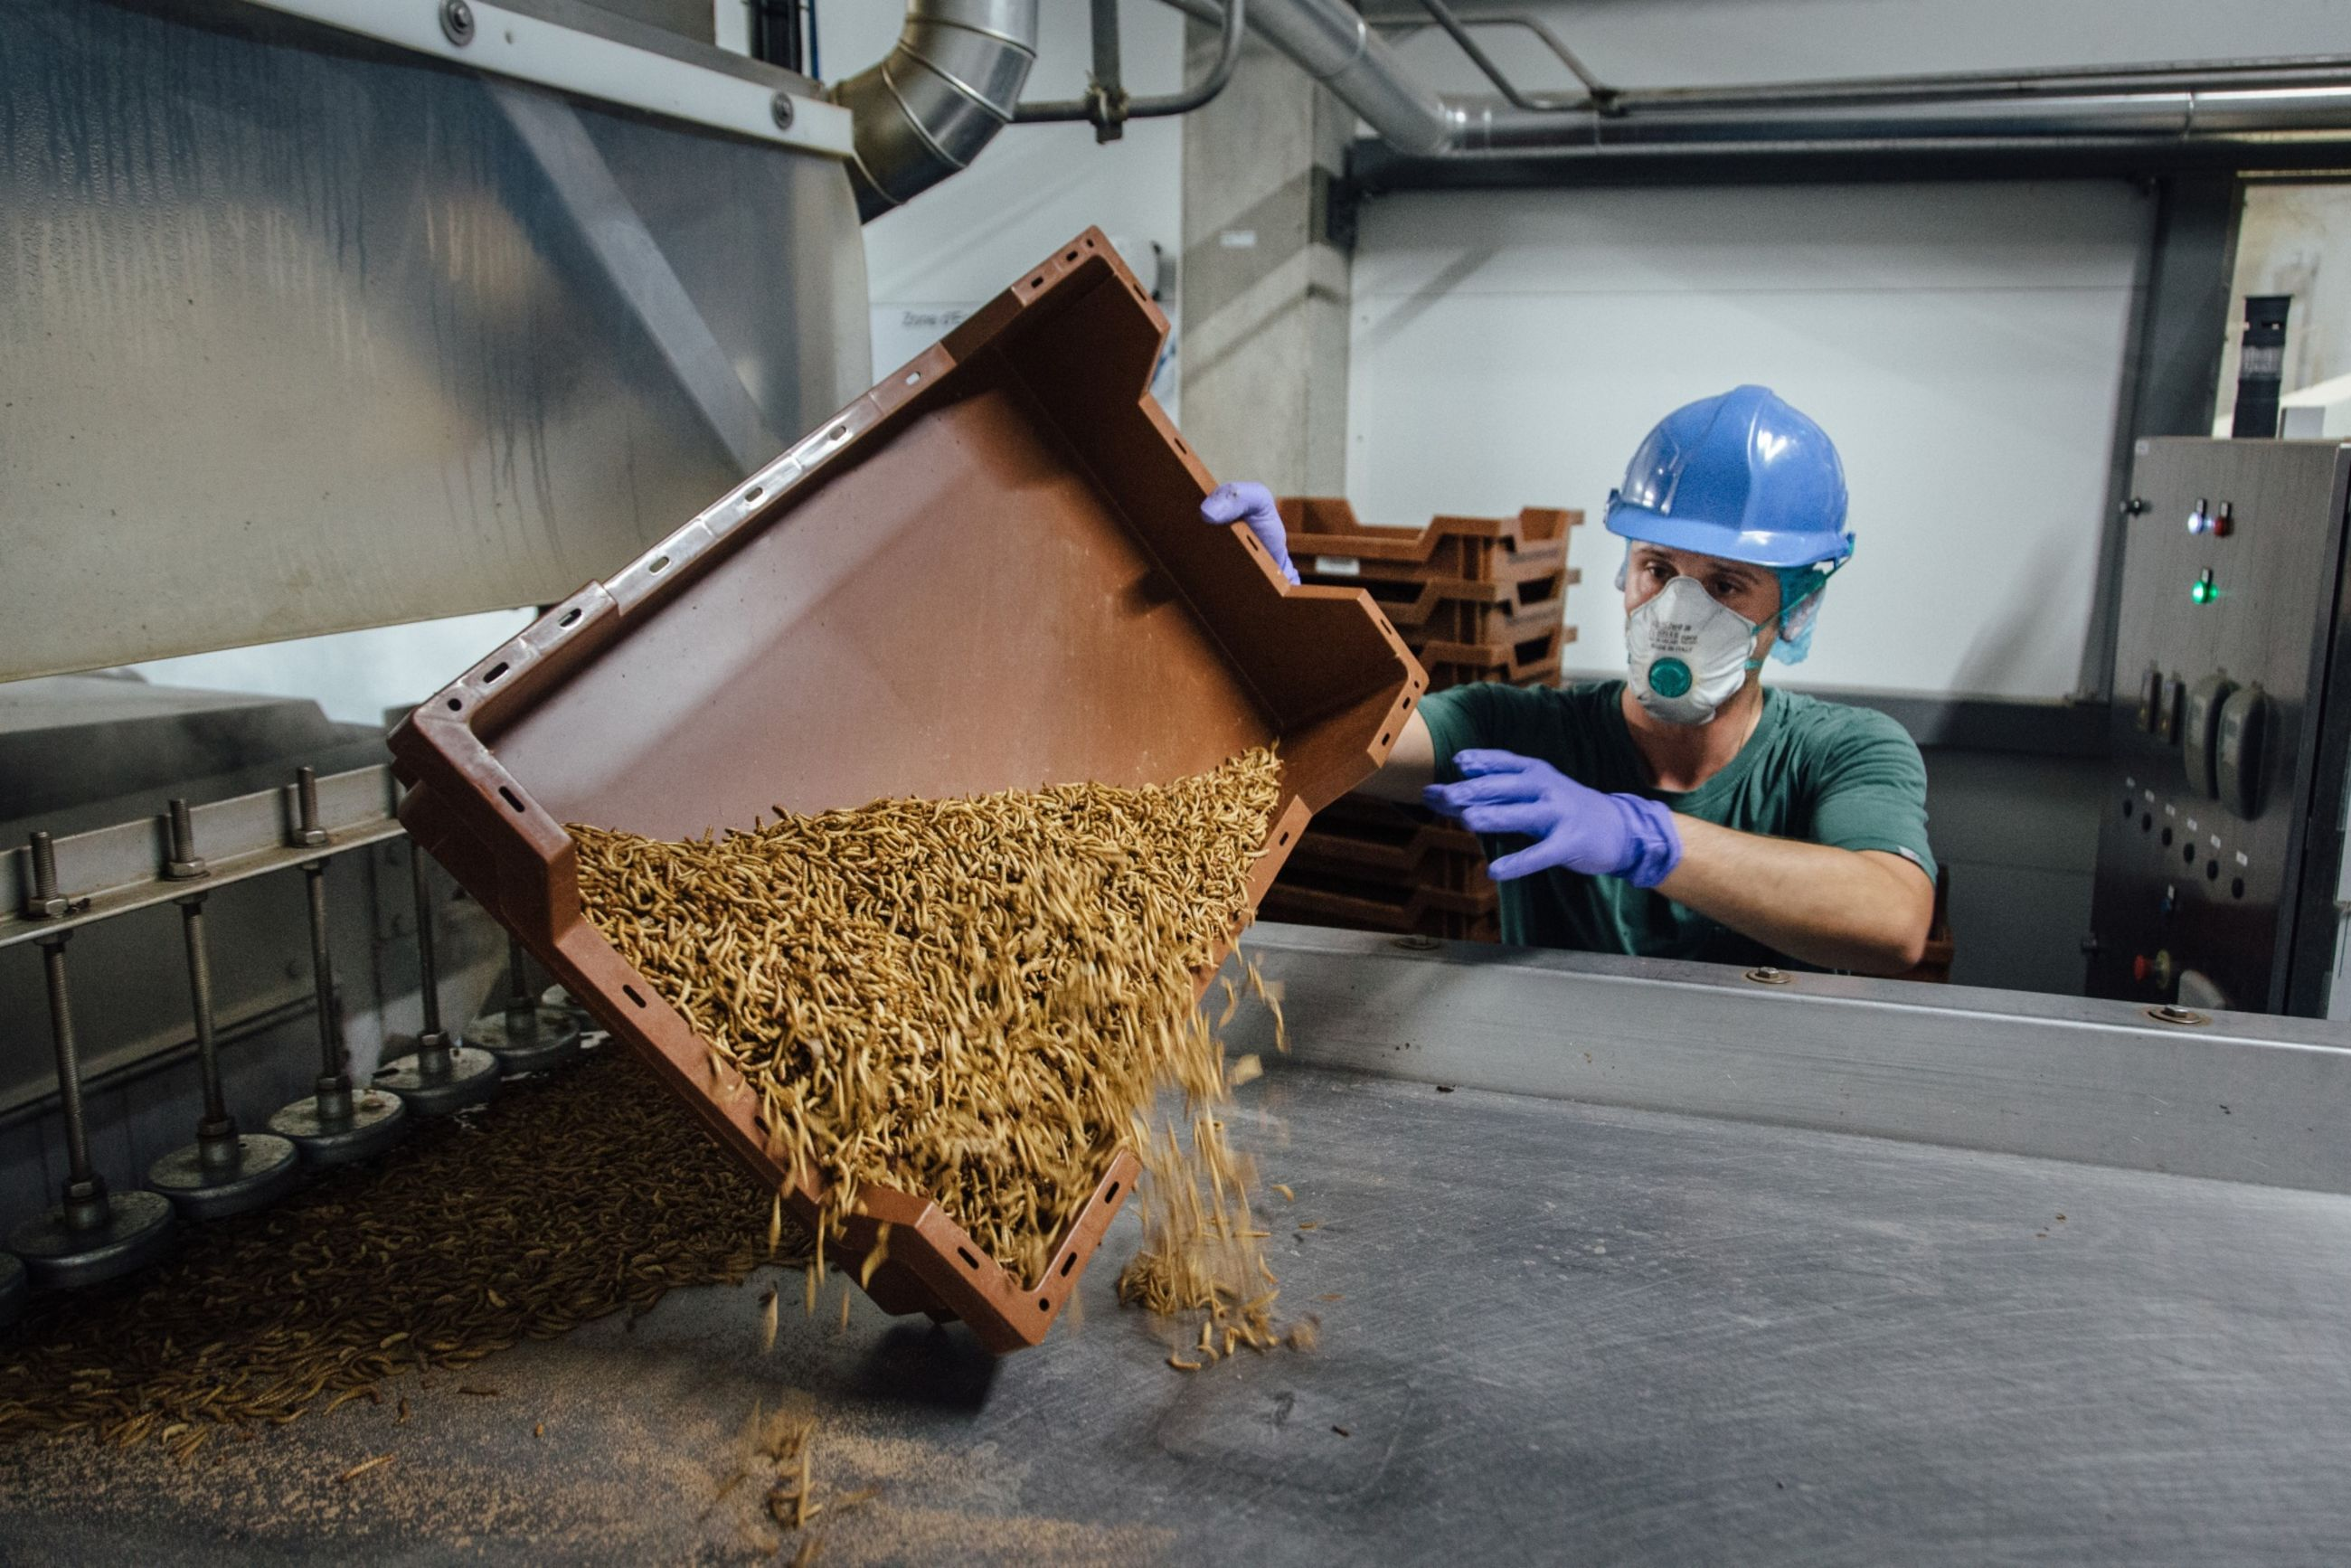 Venture Capitalists Plunge $125 Million Into French Mealworm Breeder Ynsect